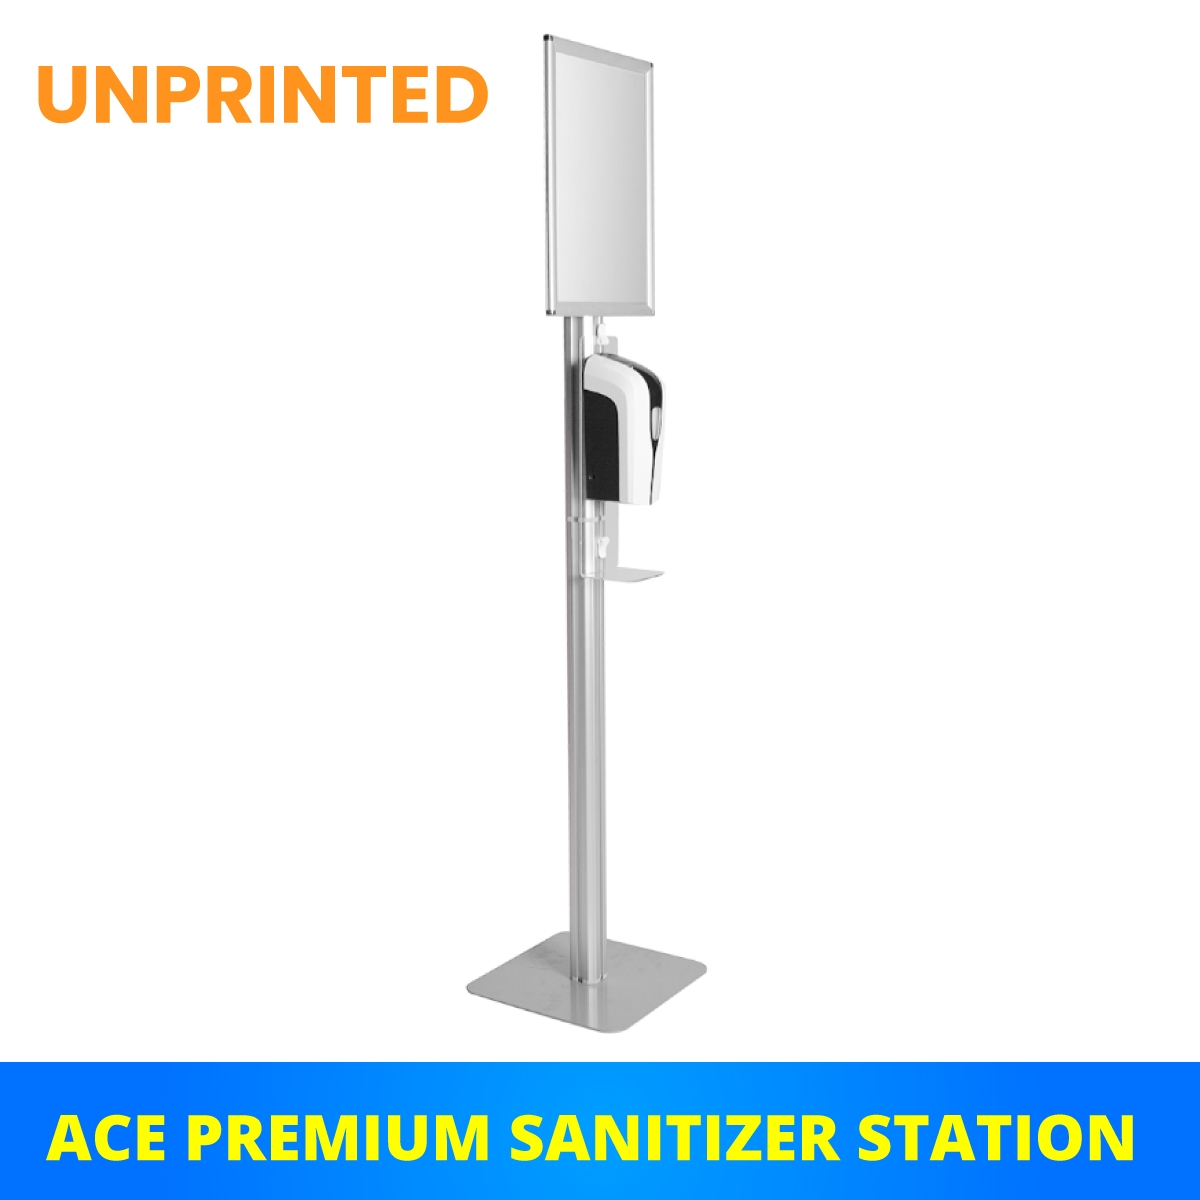 (UNPRINTED) ACE Premium Sanitizer Station w/ LIQUID or GEL Dispenser - Single Sided Sign